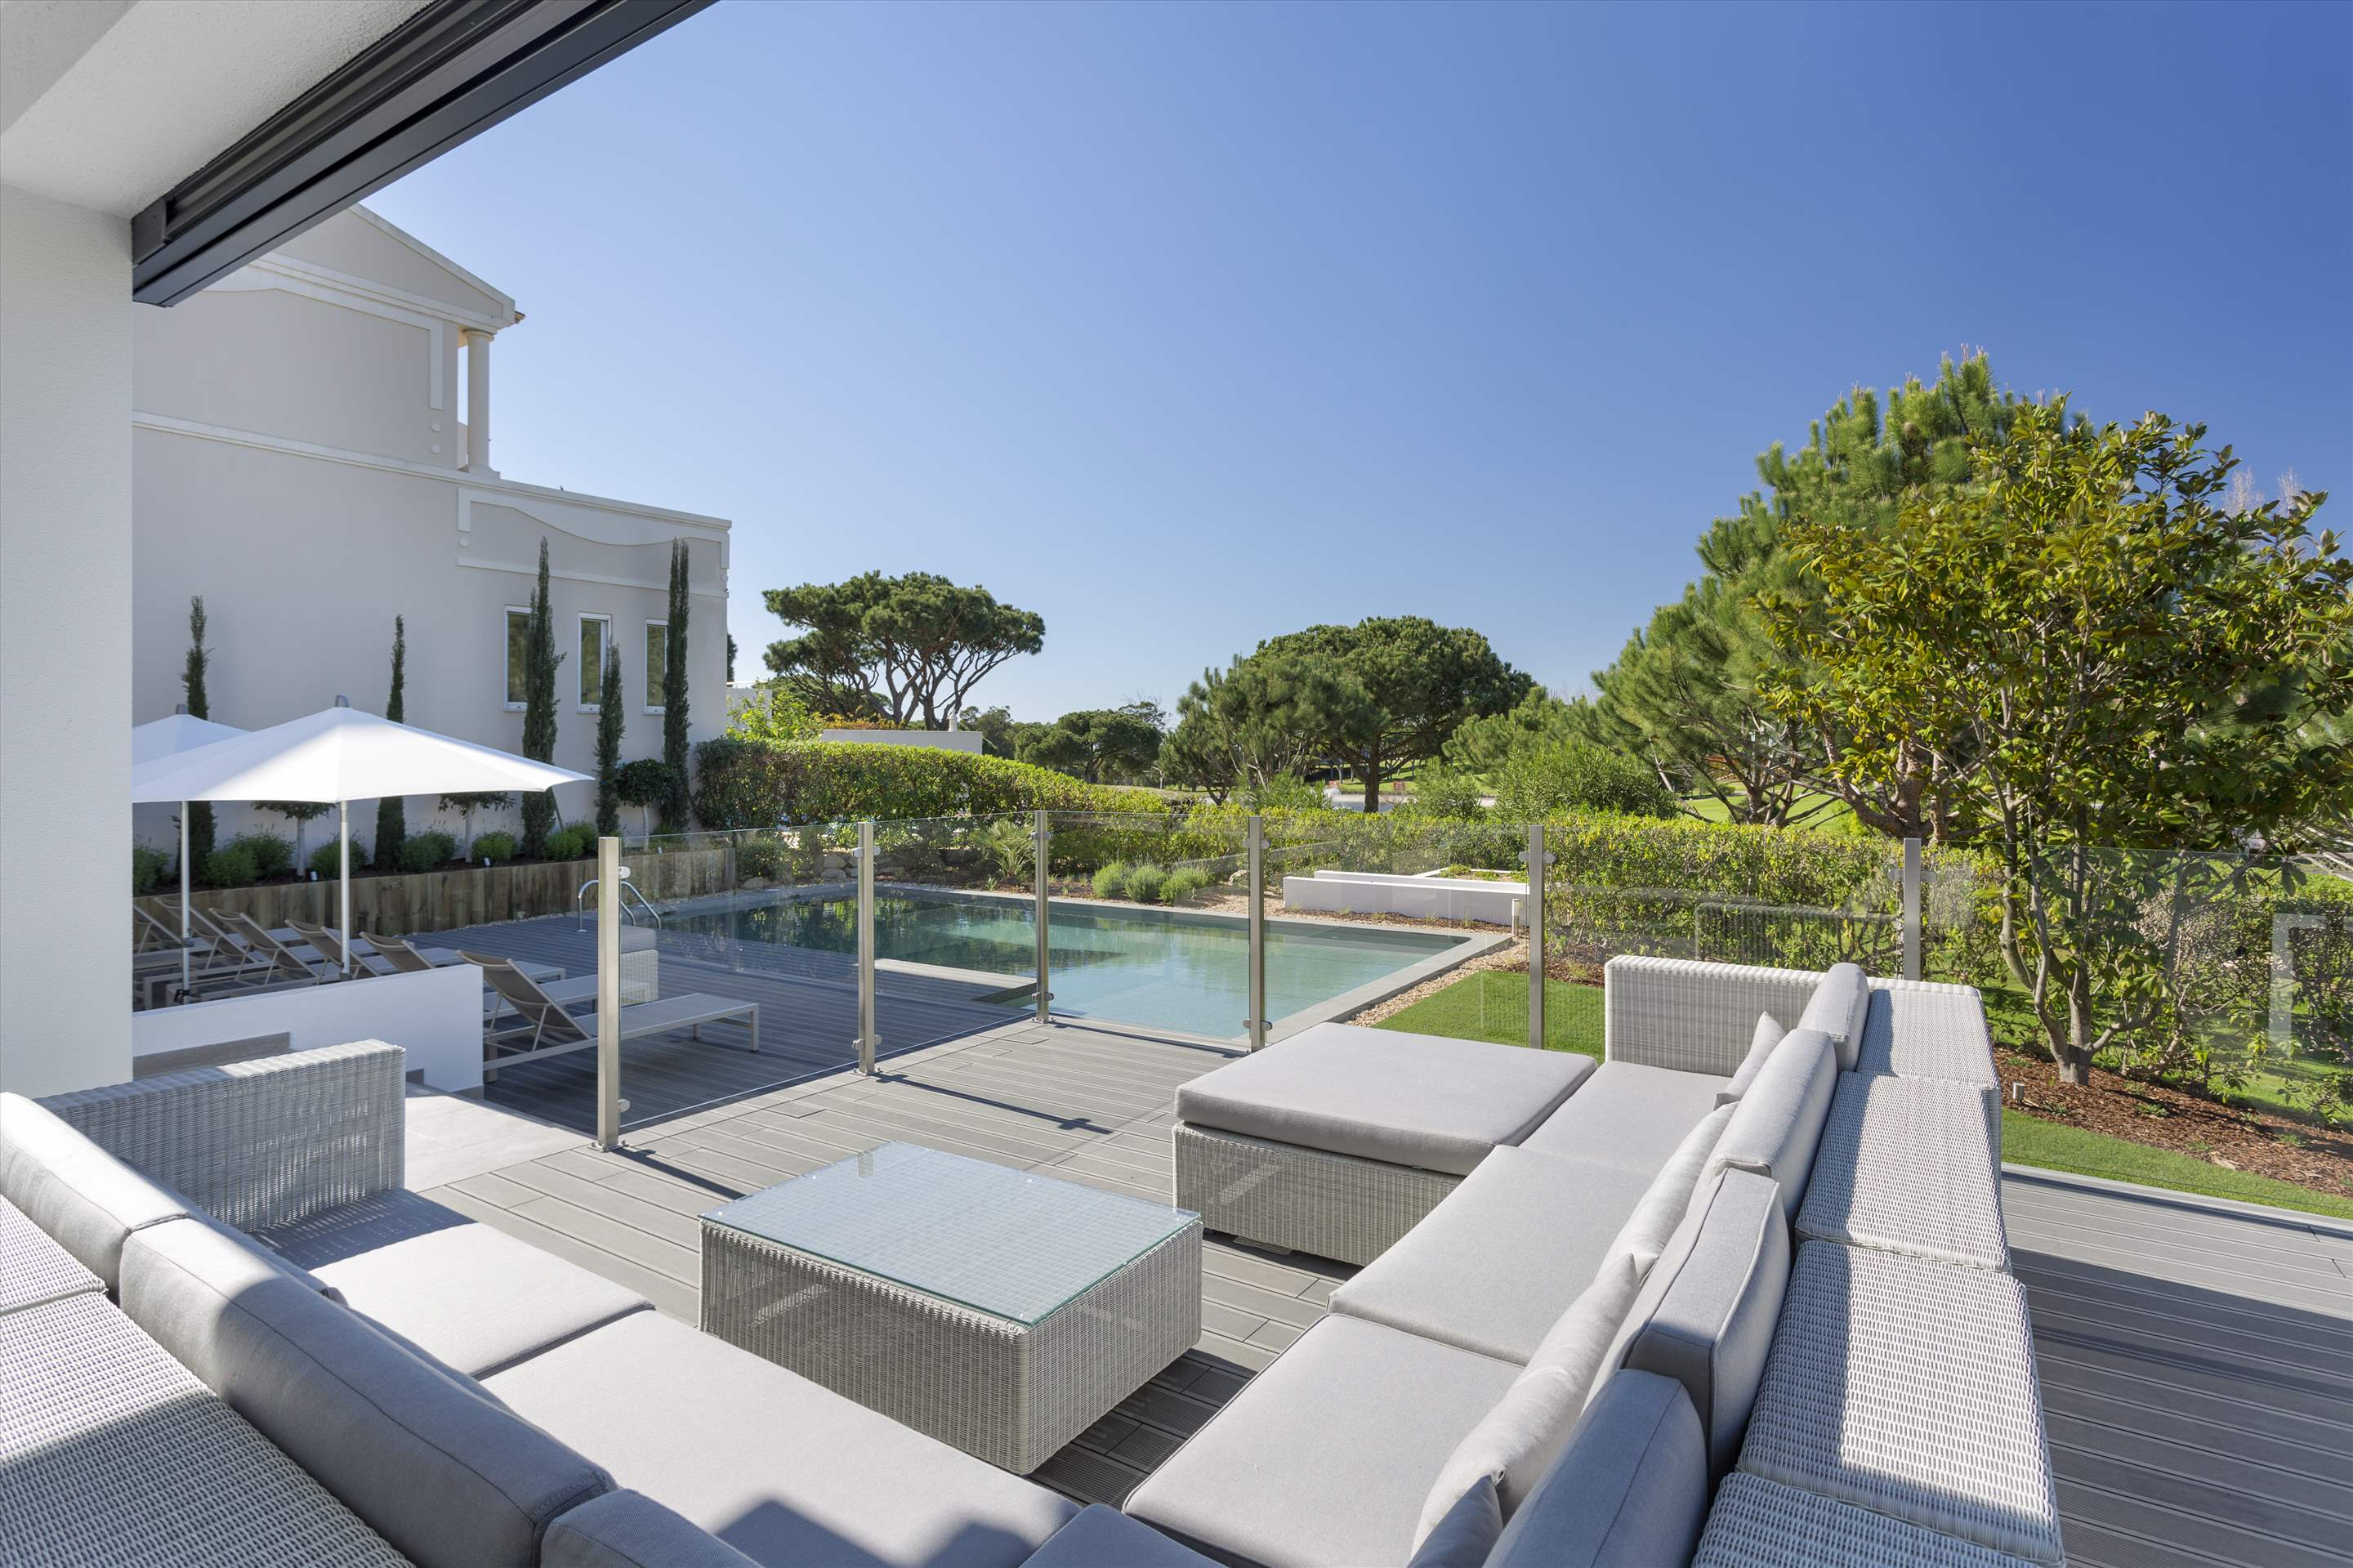 Villa Thelma, 3 bedroom villa in Vale do Lobo, Algarve Photo #2